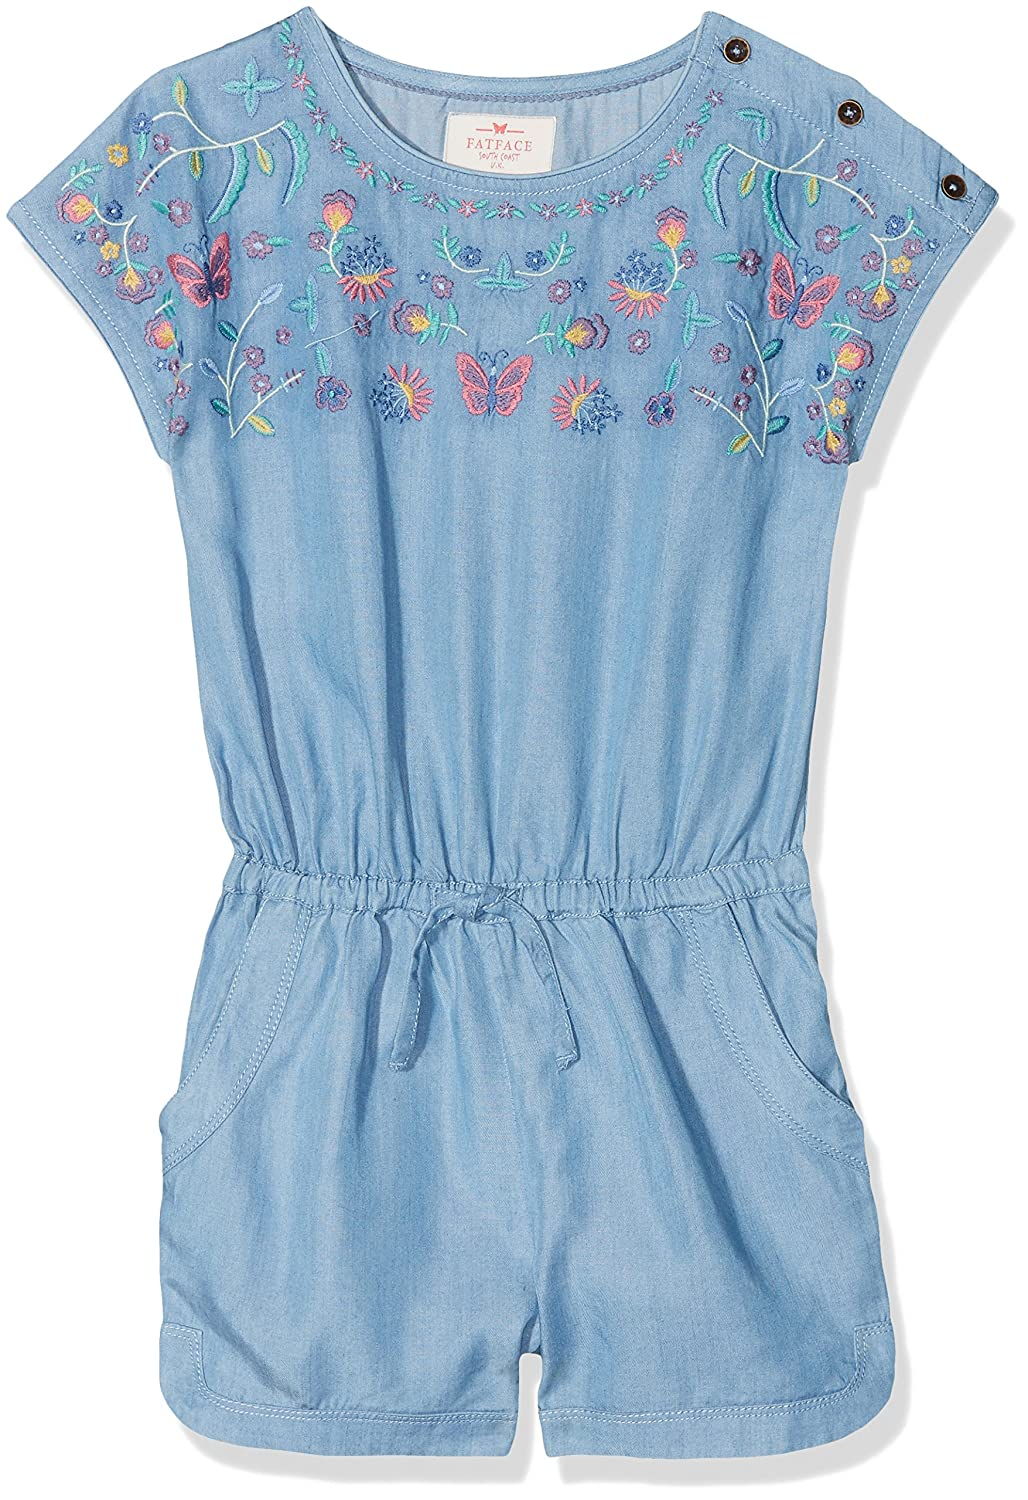 Fat Face Girl's Embroidered Playsuit Overalls 932323